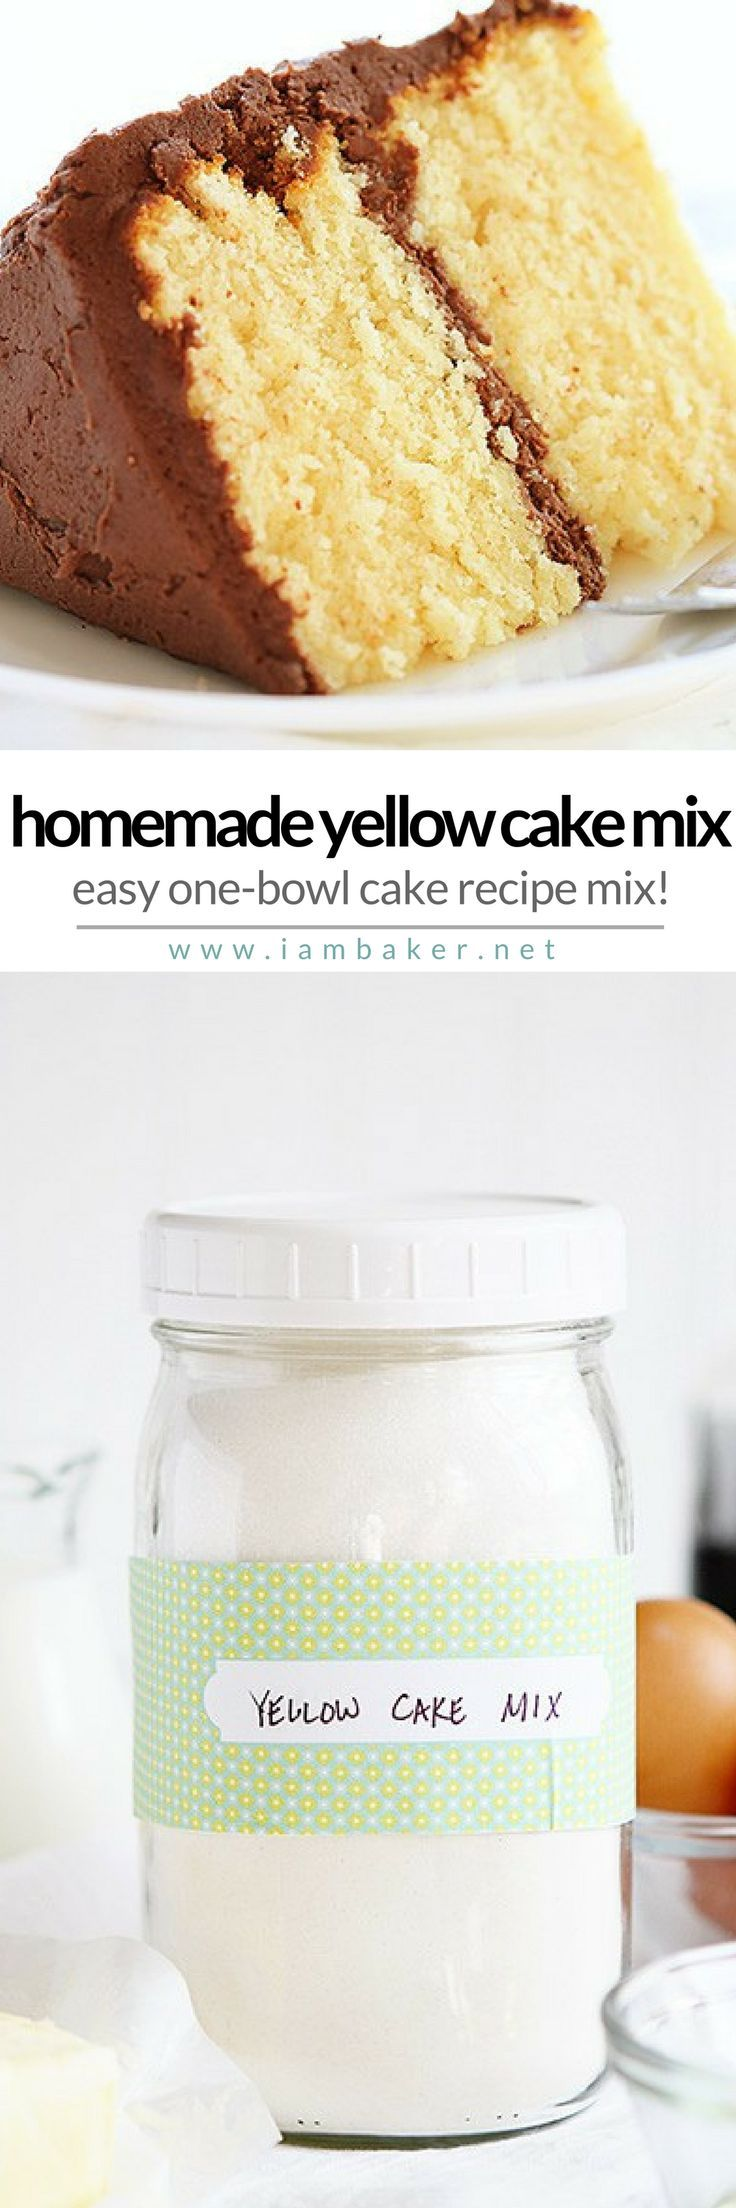 HOMEMADE YELLOW CAKE MIX | It's a one-bowl recipe you'll definitely love! Homemade and from scratch dessert you can share with the whole family! For more simple and easy dessert recipes to make, check us out at #iambaker. #foodlover #desserts #yummydesserts #recipeoftheday #cake #sweettooth #yellowcake #cakemixrecipes